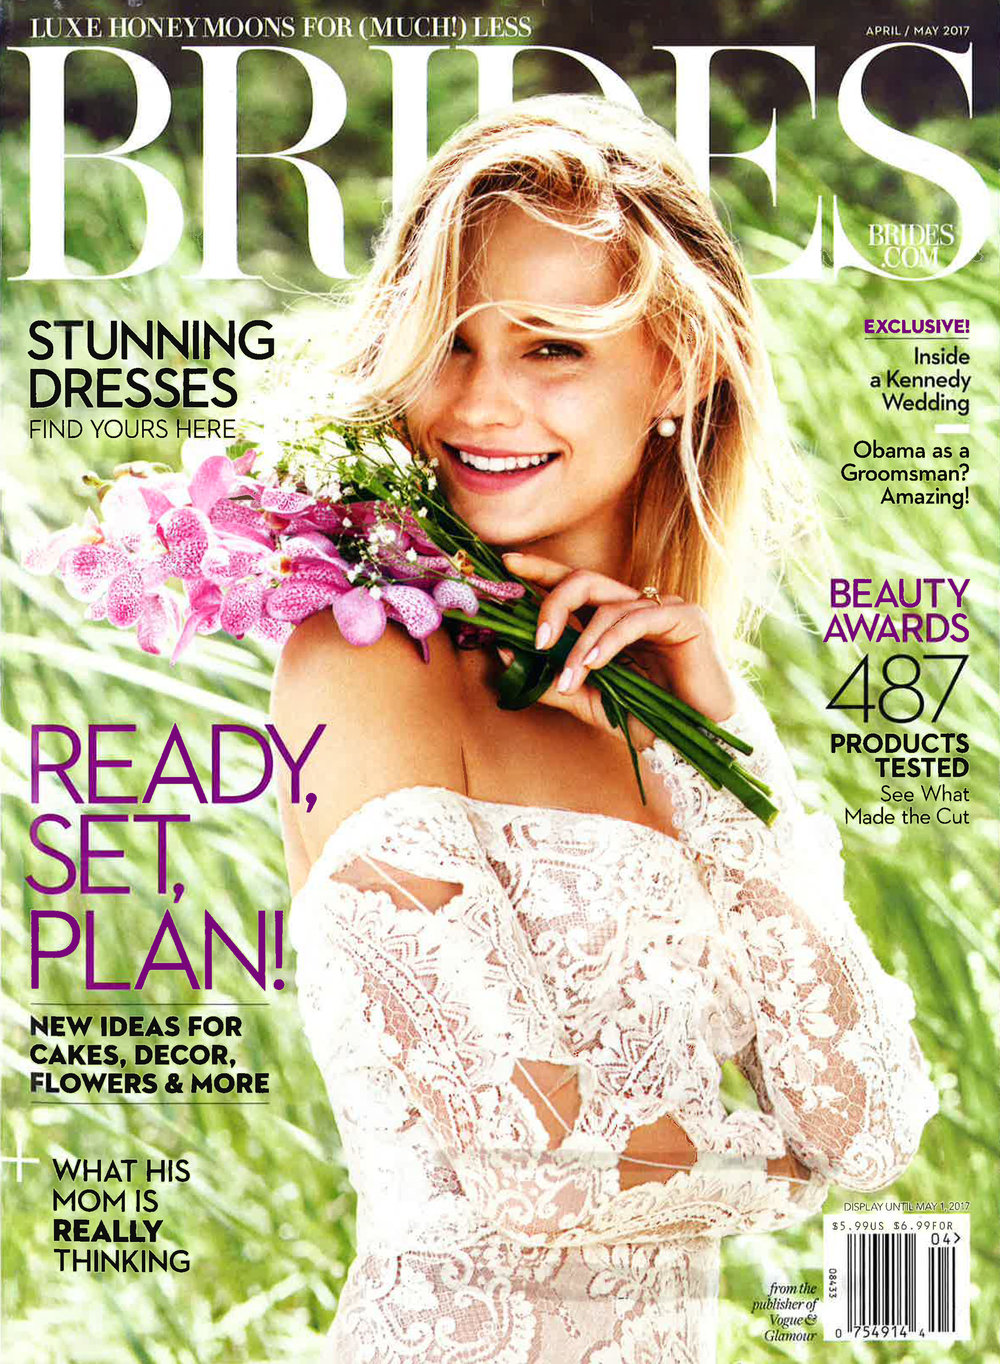 Brides_April May_Cover.jpg